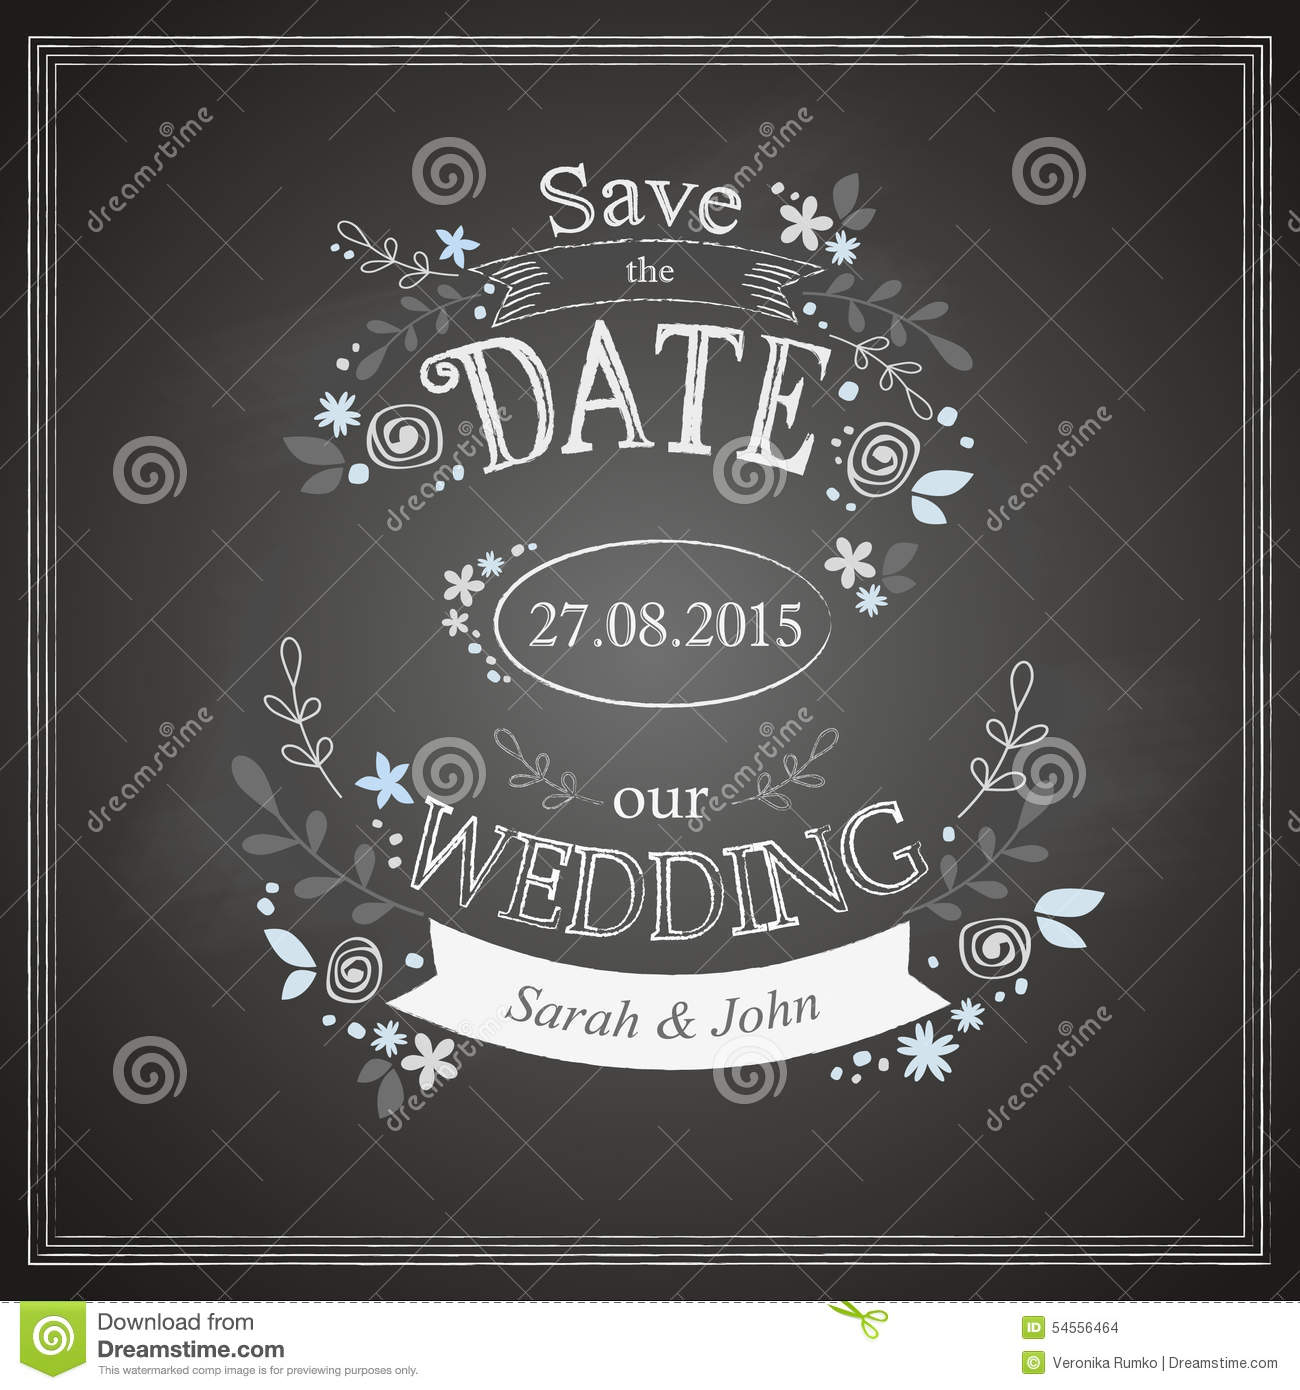 save the date wedding card stock vector illustration of abstract